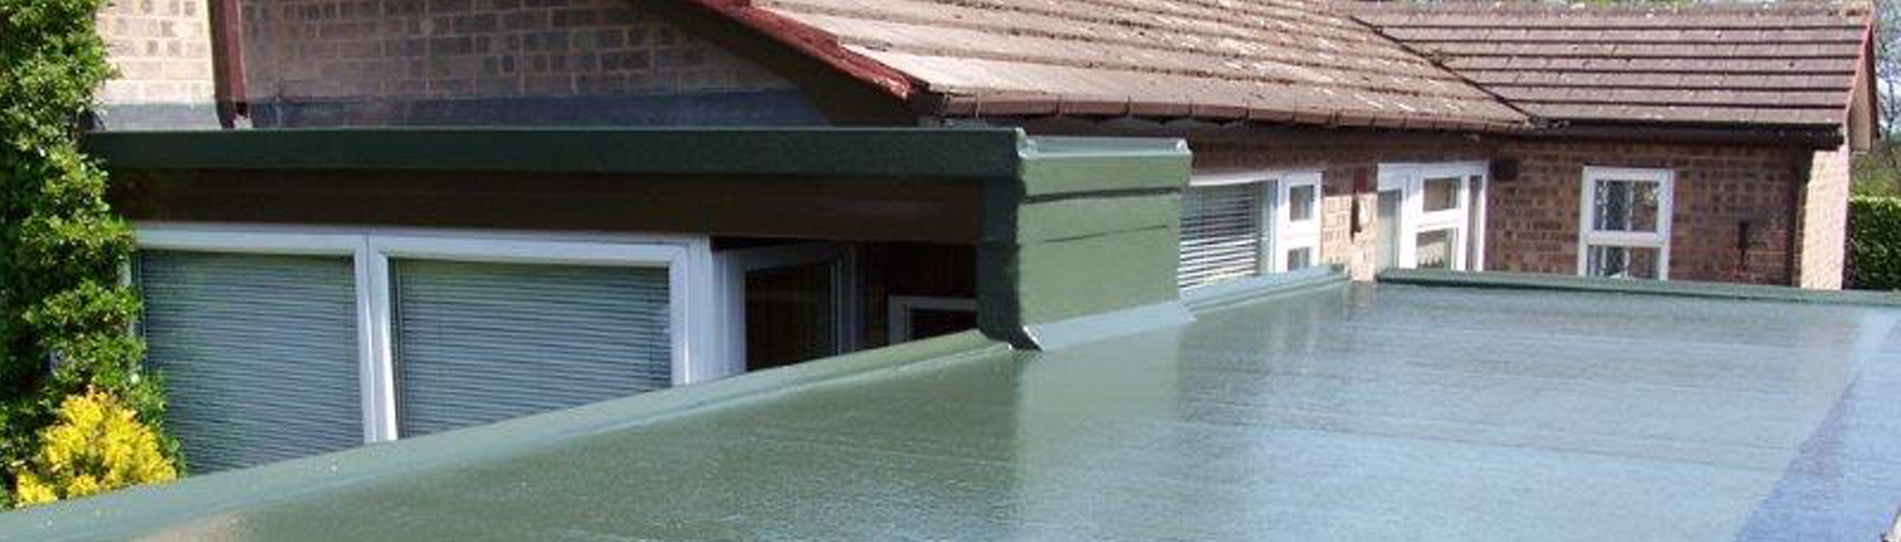 Olivair Home Improvements | Flat Roofs